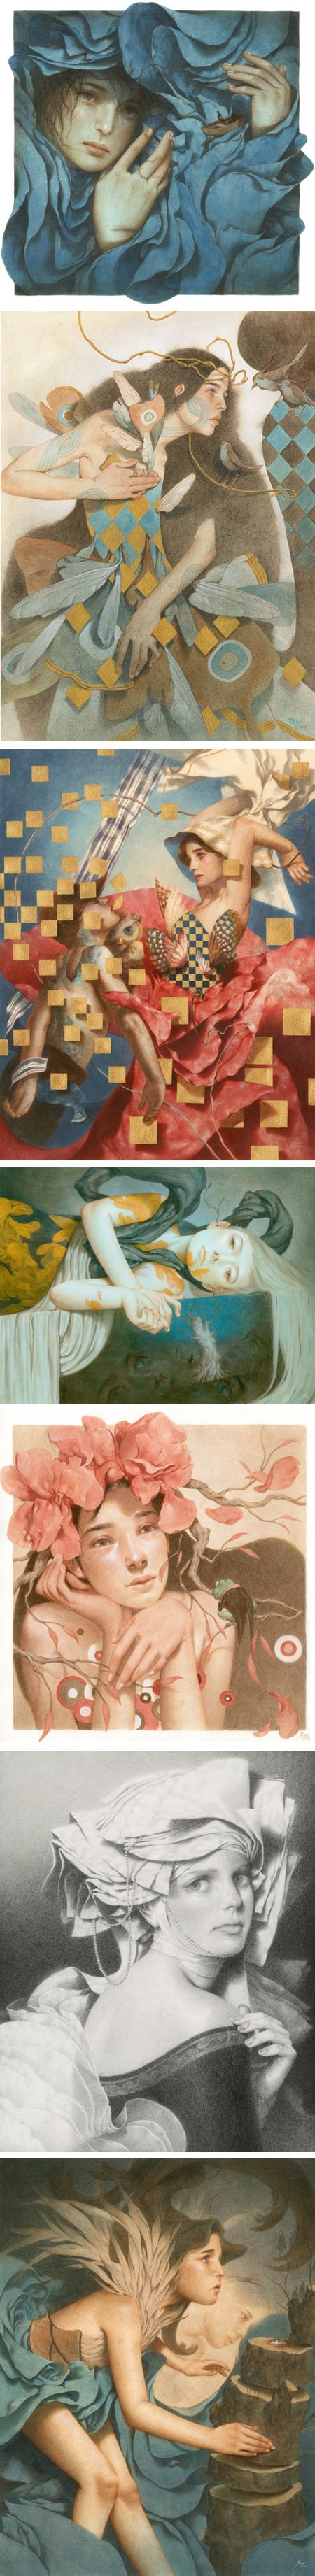 Tran Nguyen